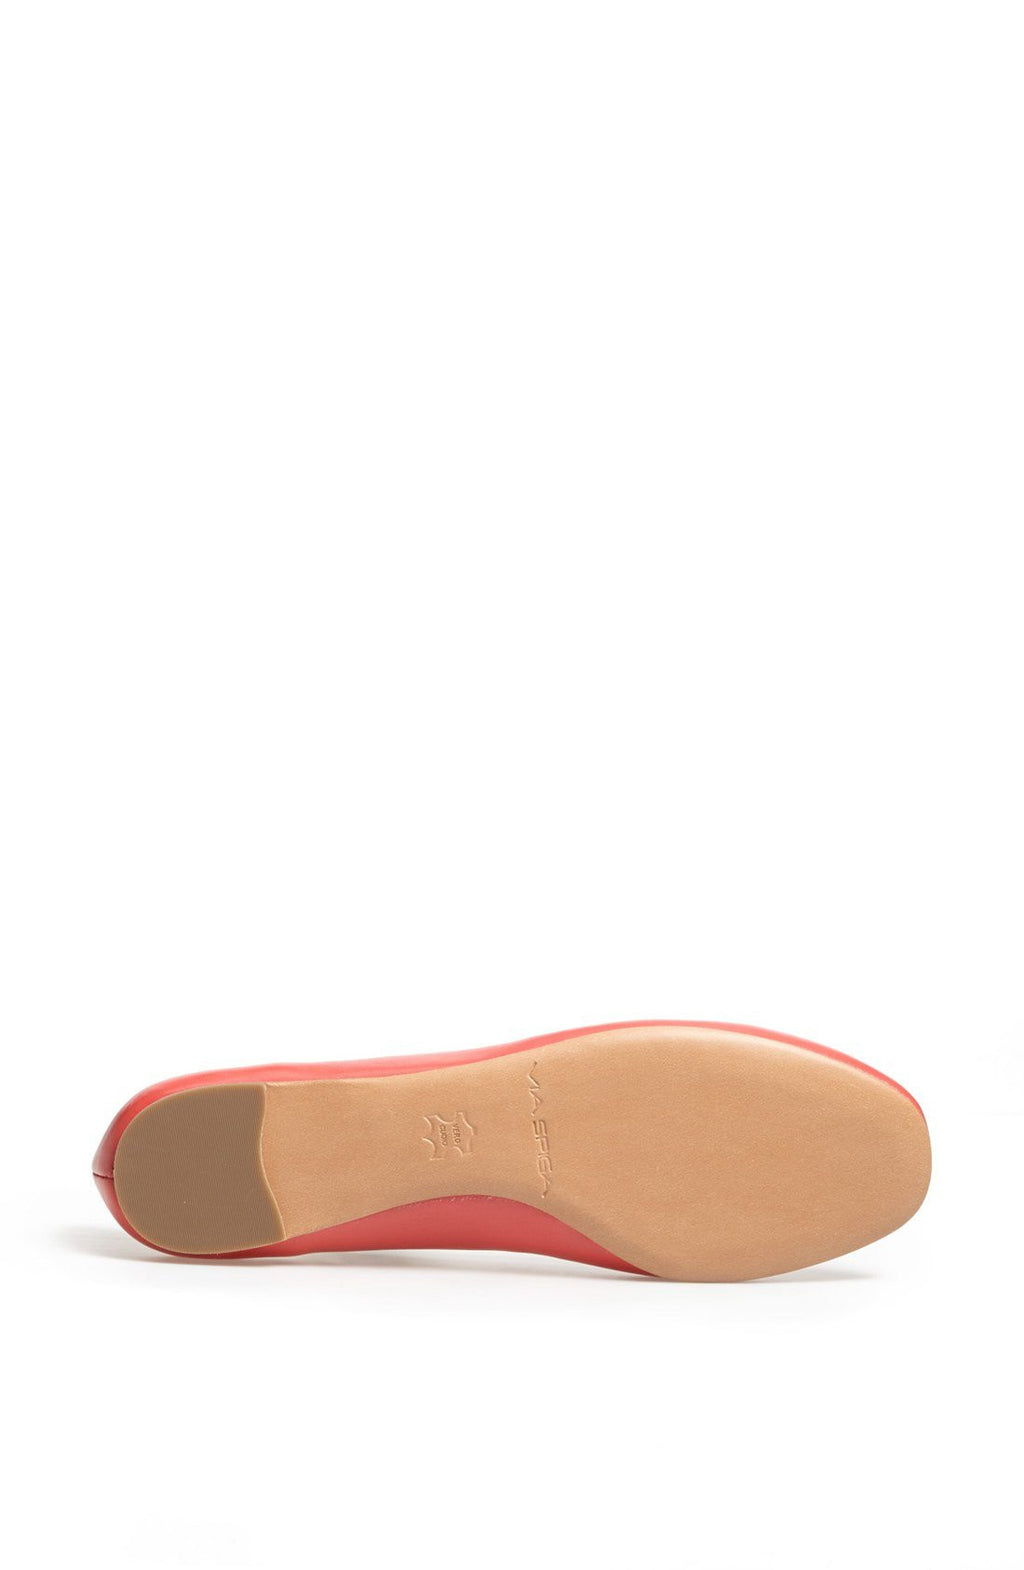 VIA SPIGA Orange Lilac Ballerina Flat-VIA SPIGA-Fashionbarn shop